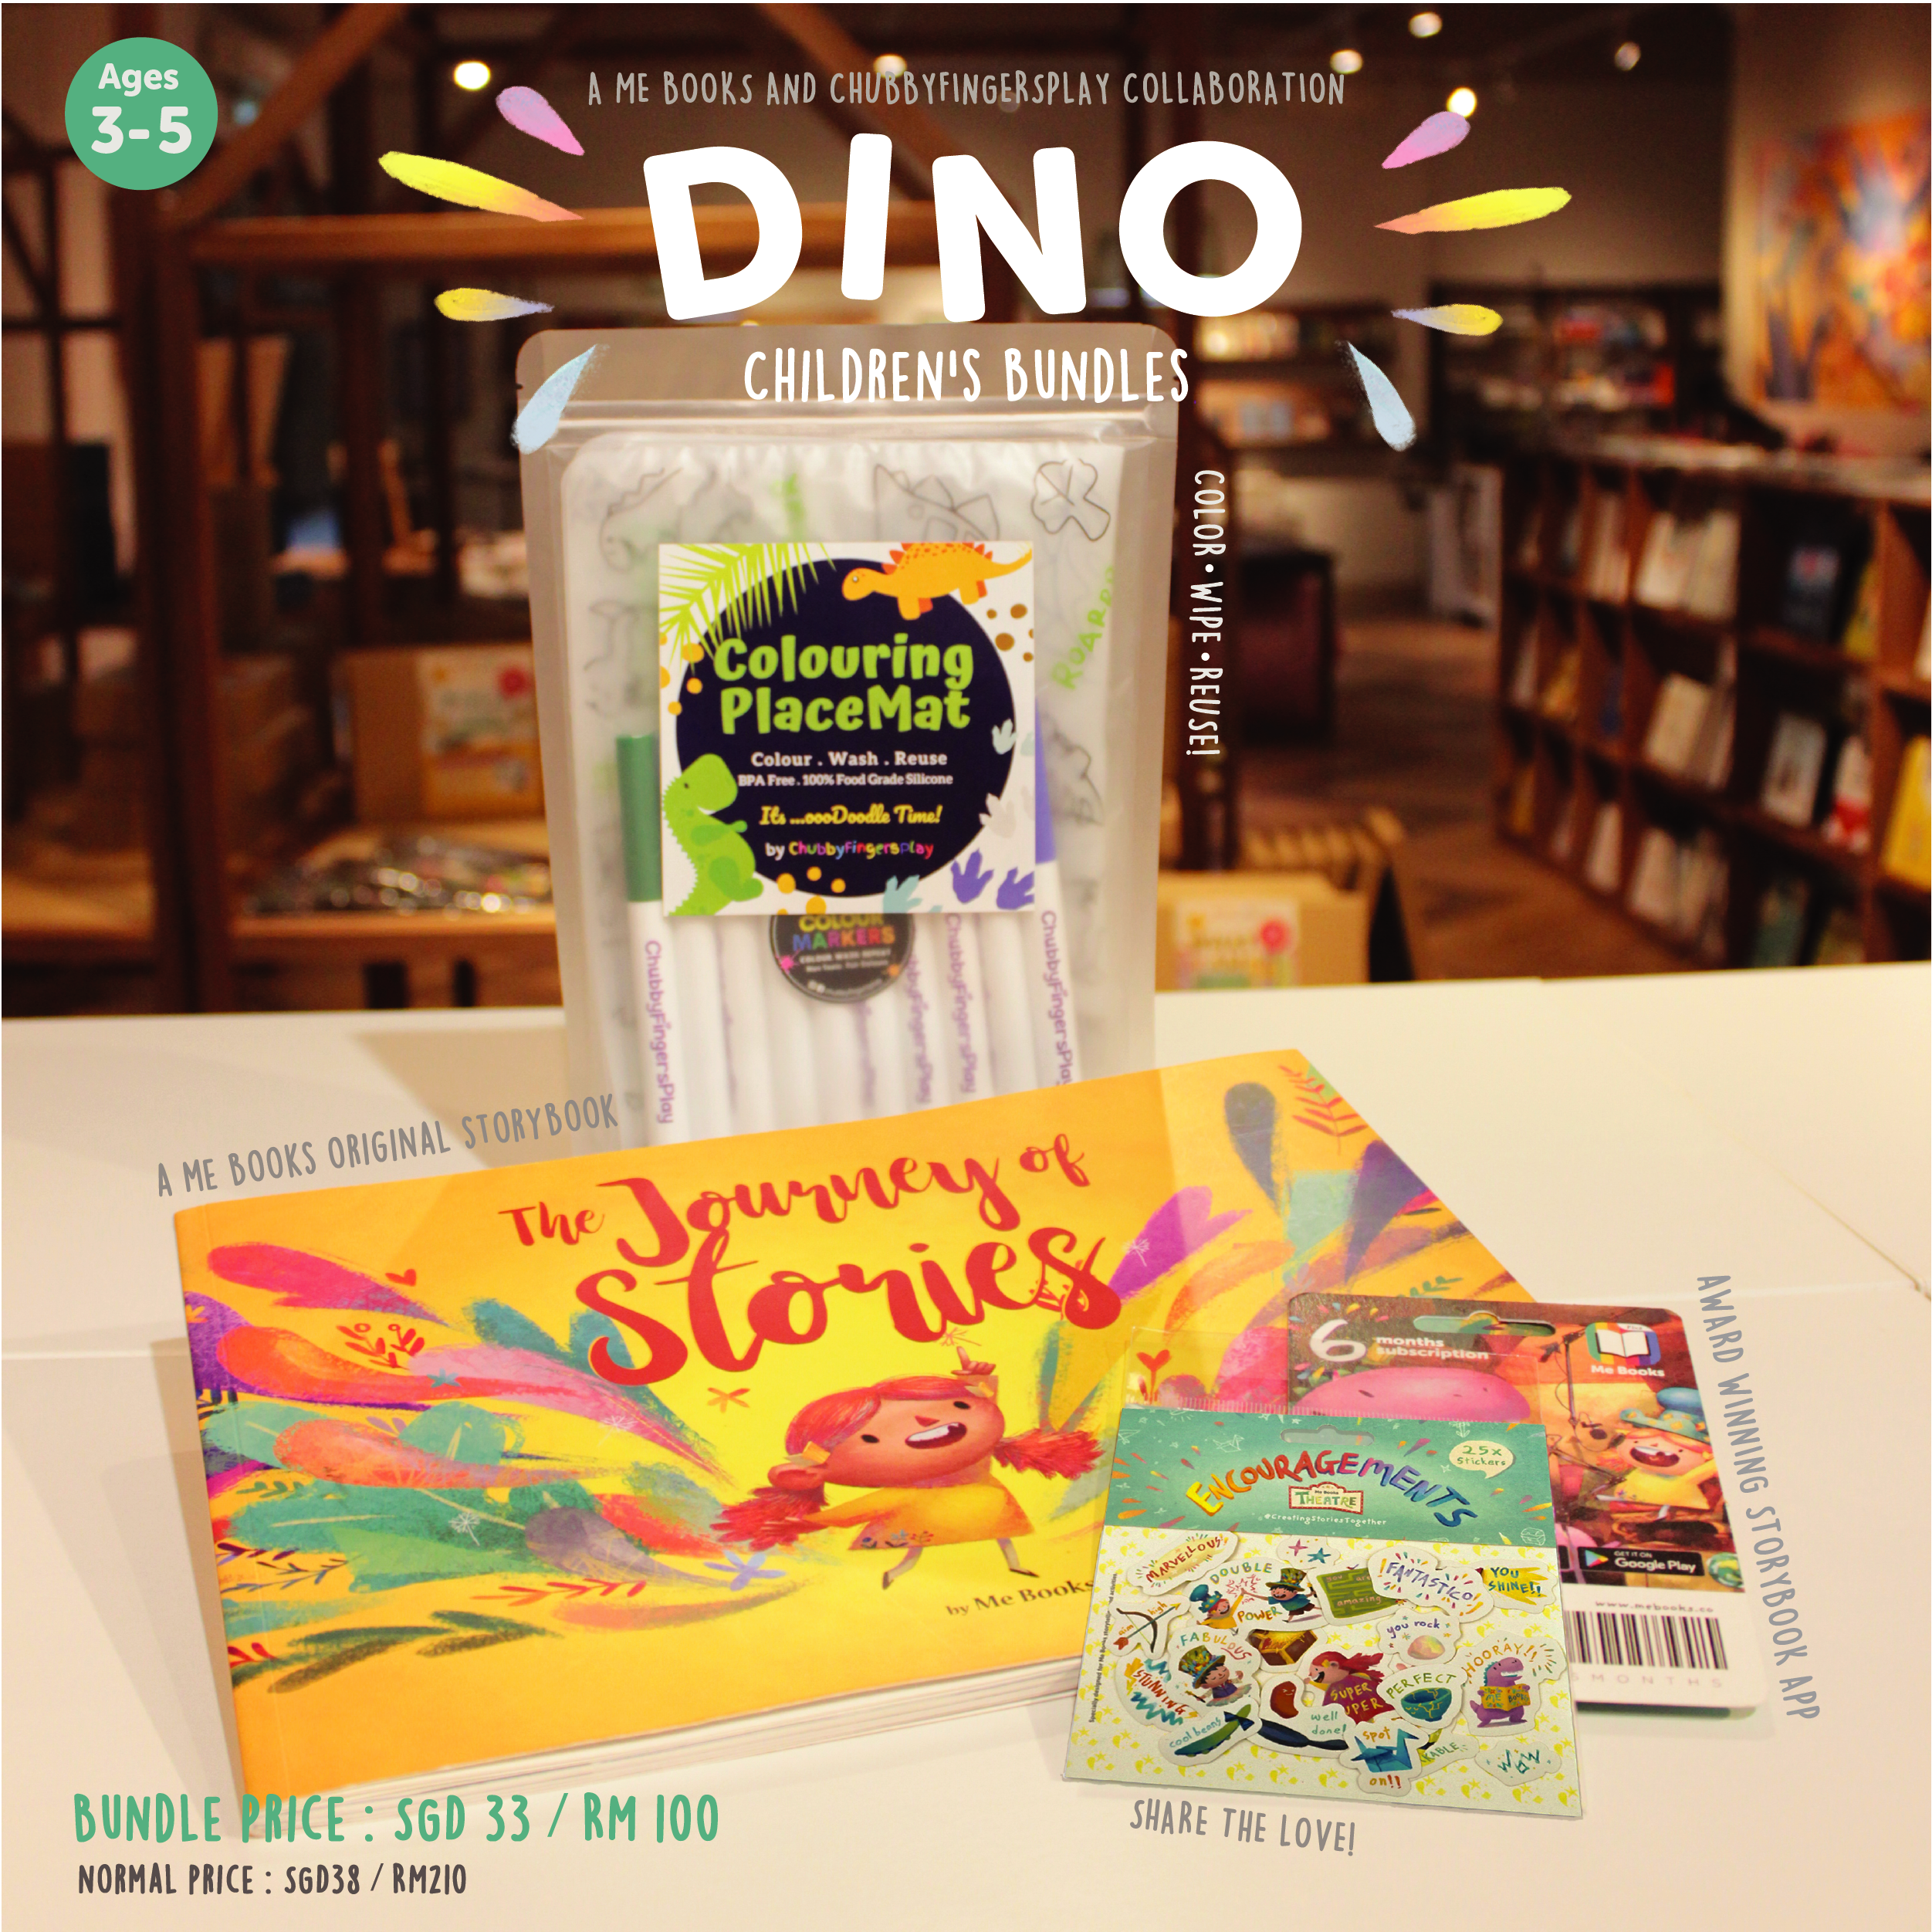 Dino Children's Bundle